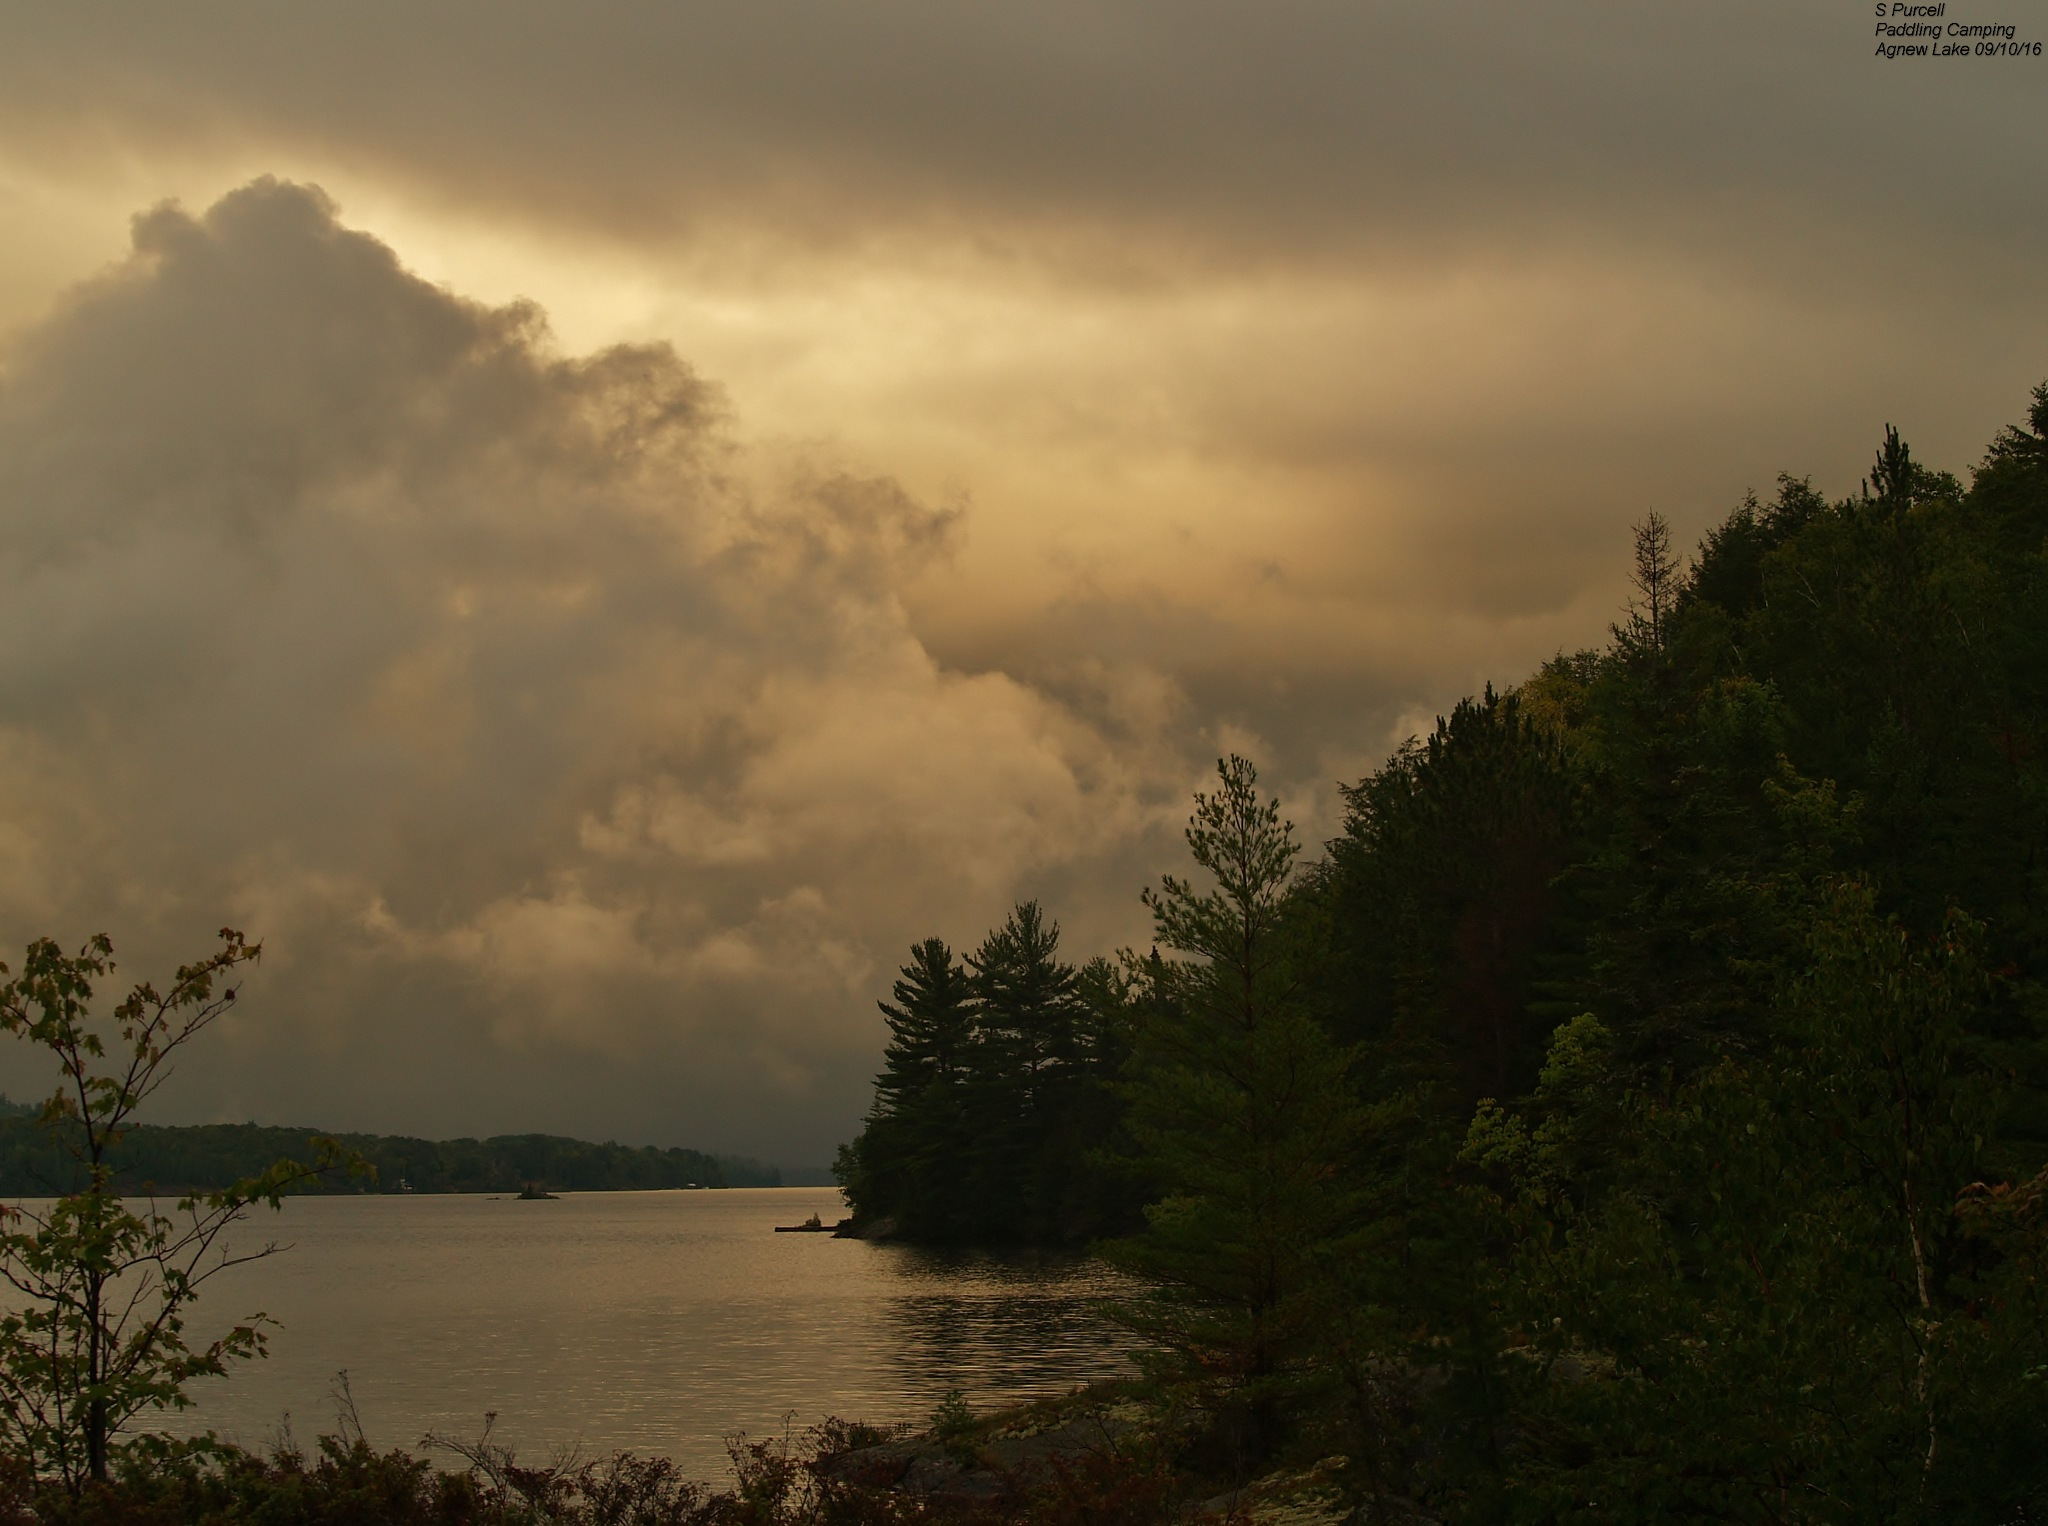 Wilderness Skies over Agnew Lake  by Sean Purcell